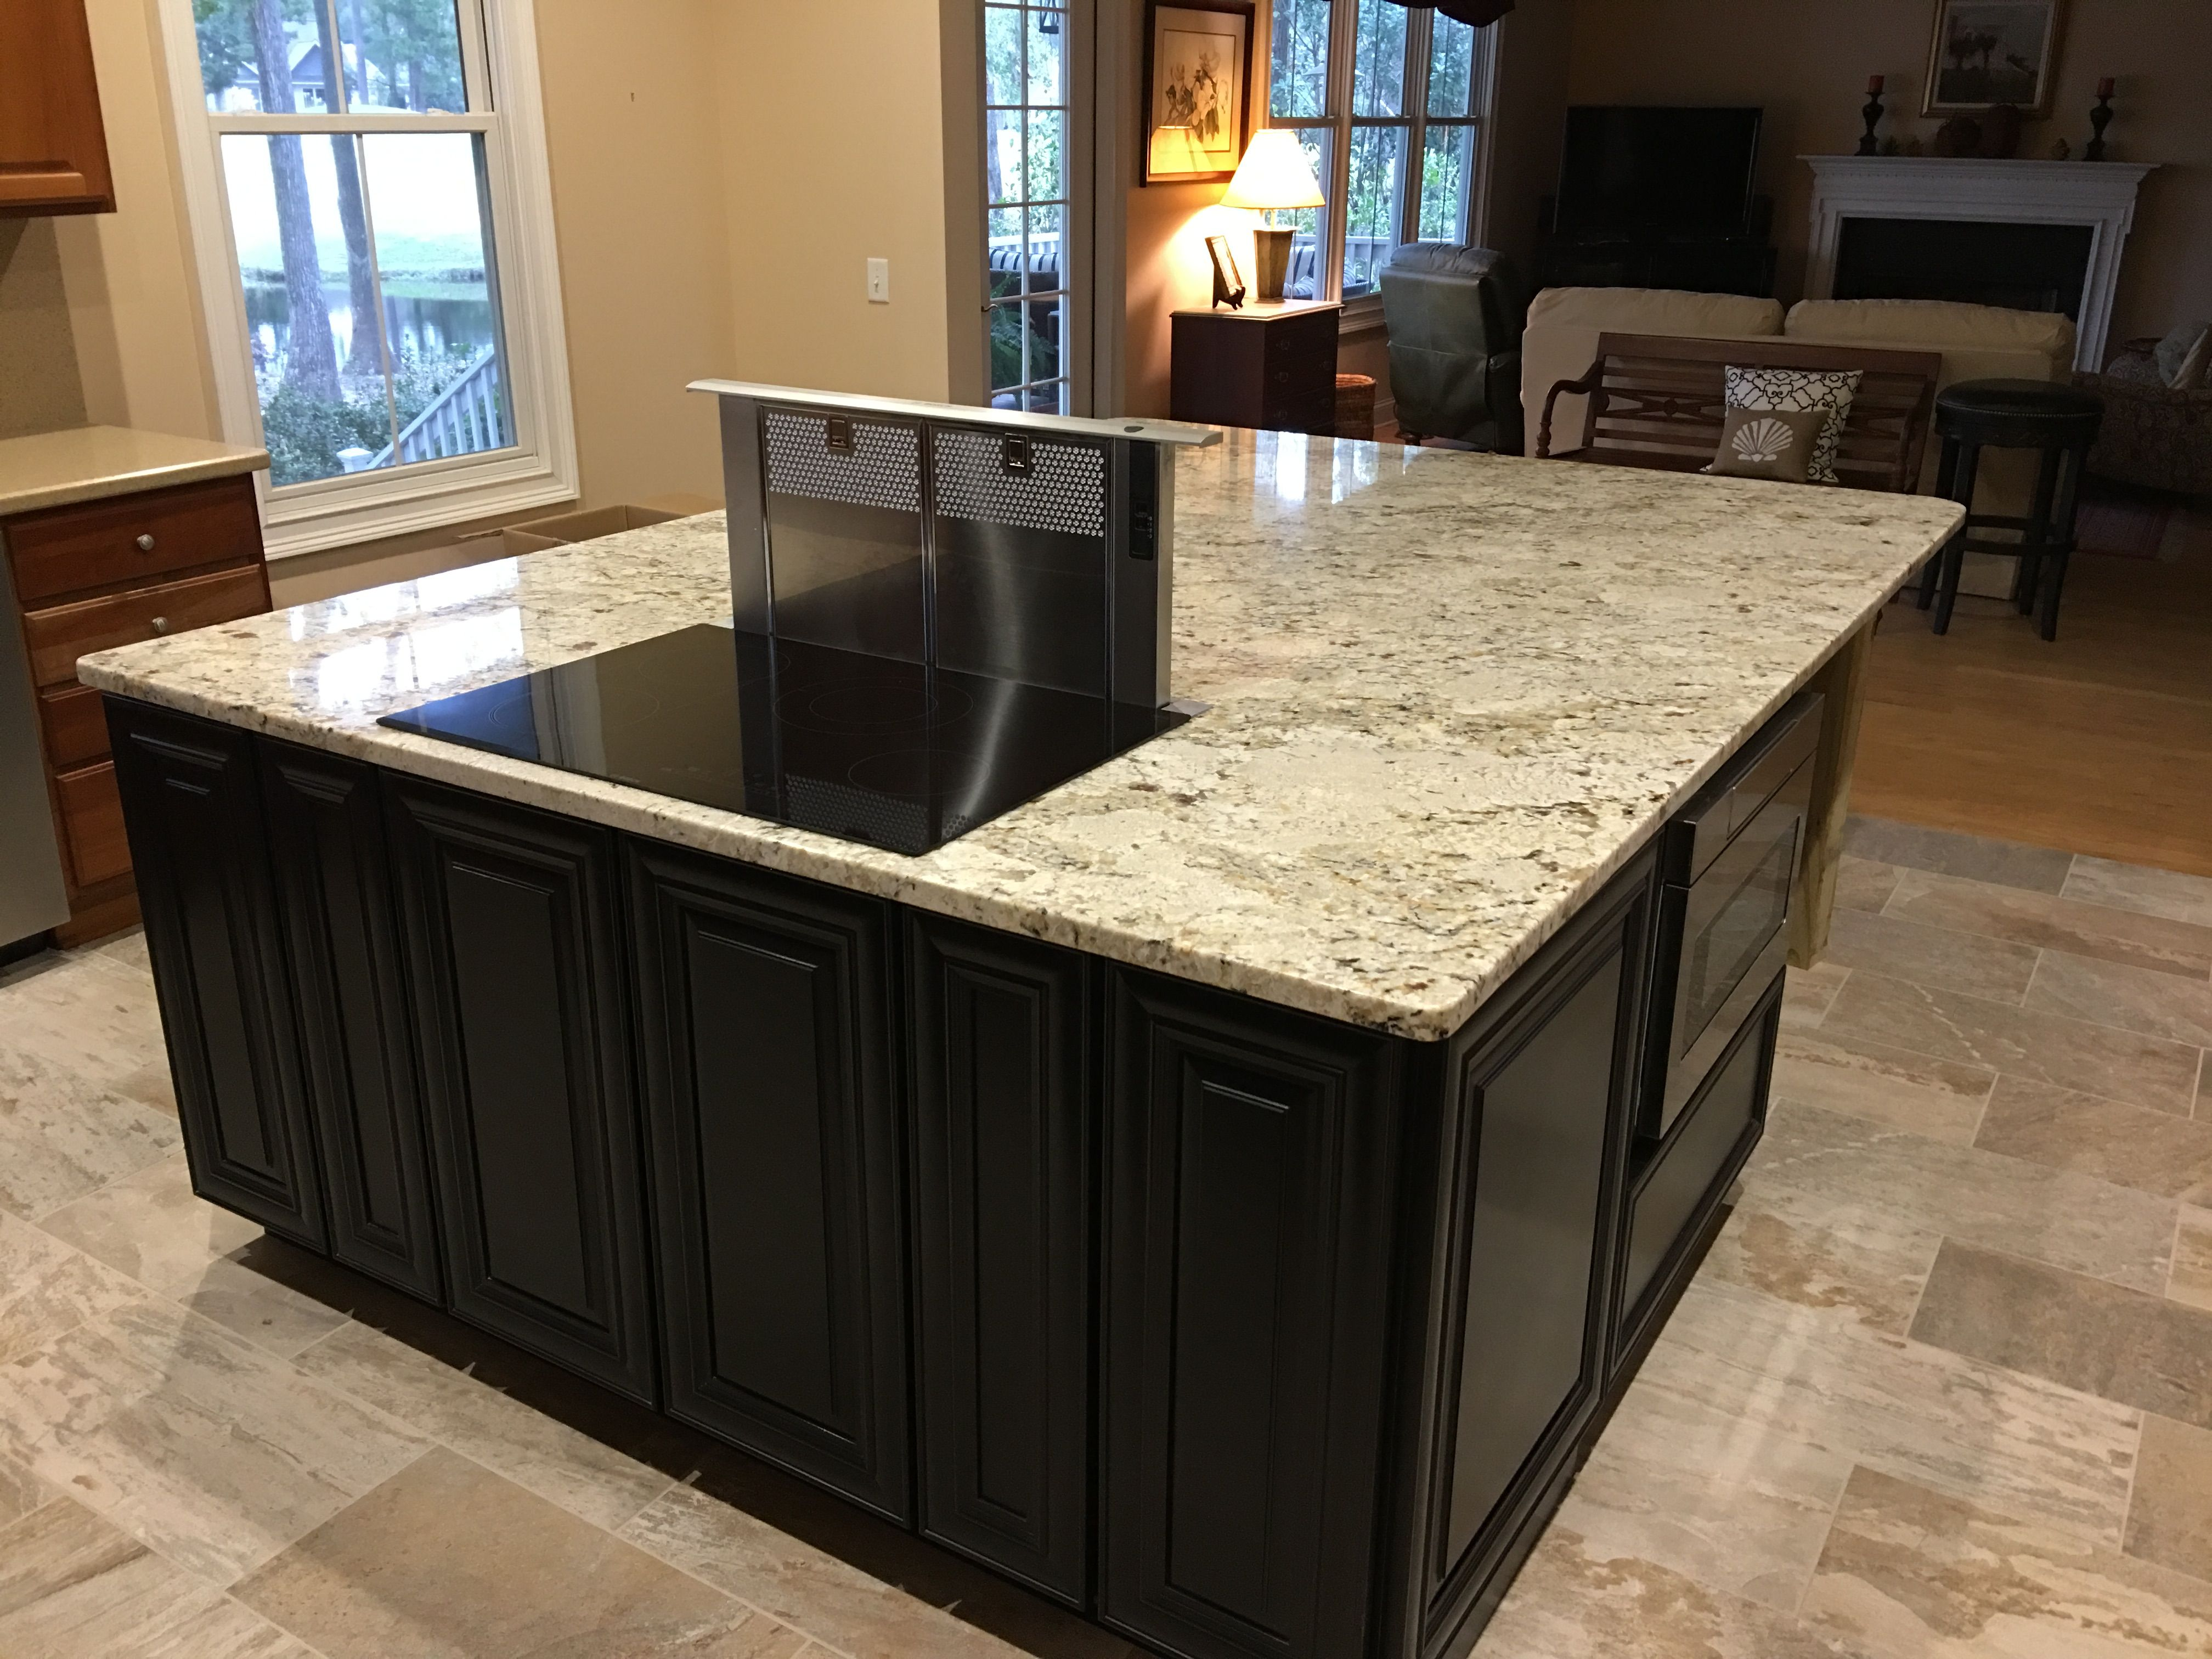 island inspirational kitchen vent build to awesome how of a